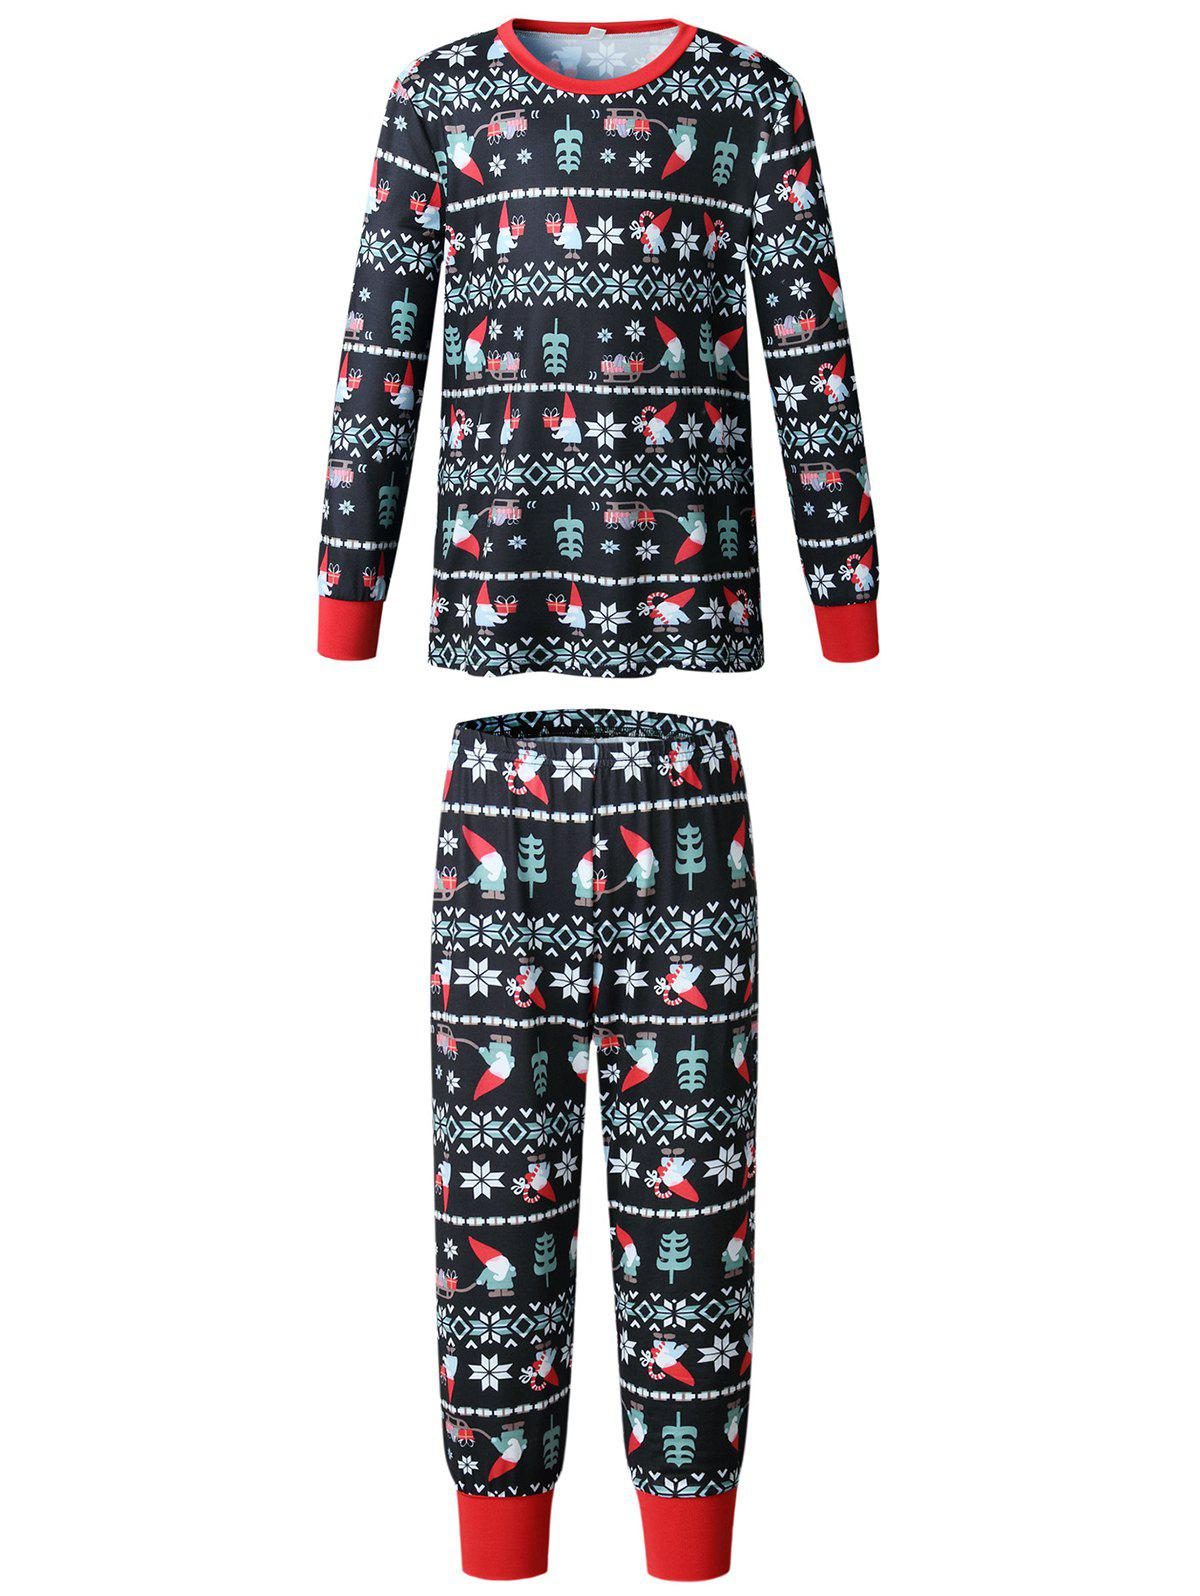 Fashion Christmas Long Sleeves Casual  Print Family Pajama Sets Parent-Child Home Suit Pyjamas